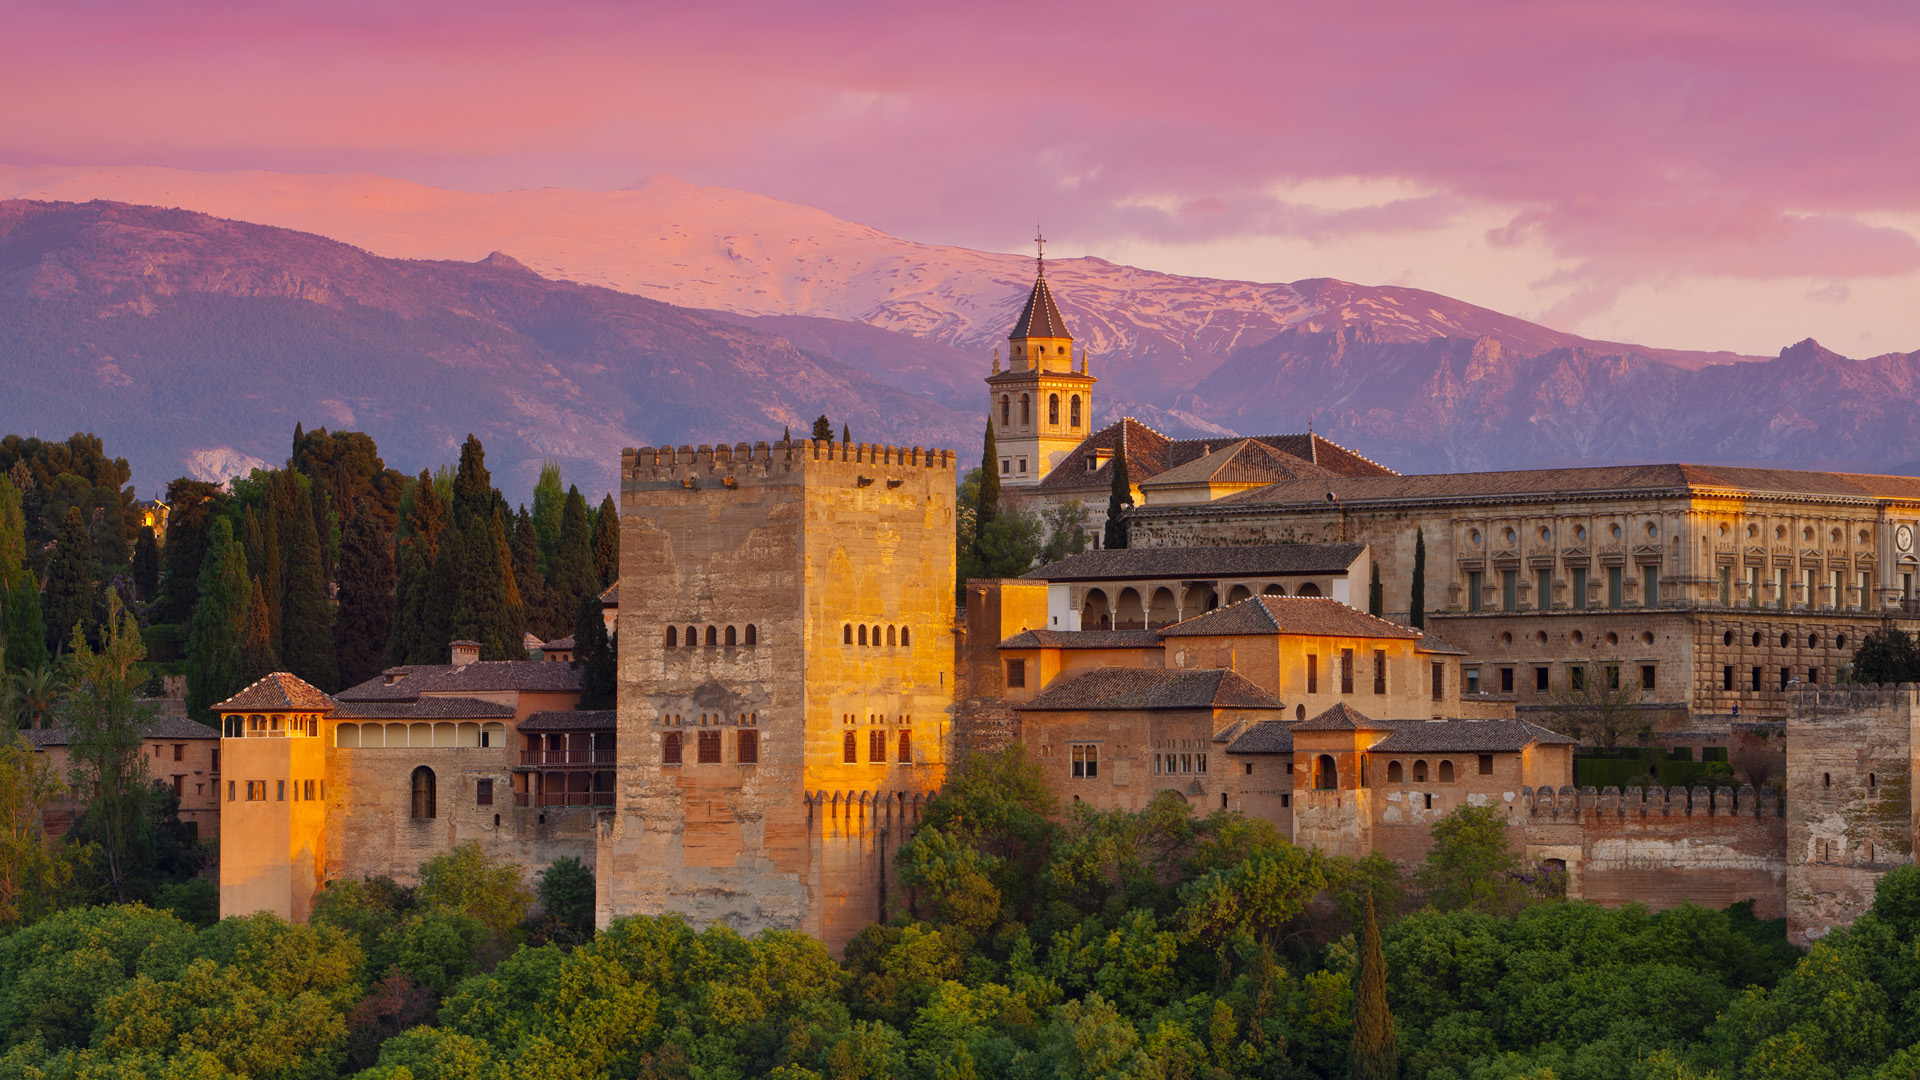 https://redmago.com/wp-content/uploads/2012/10/alhambra_palace_at_sunset__granada__spain1.jpg